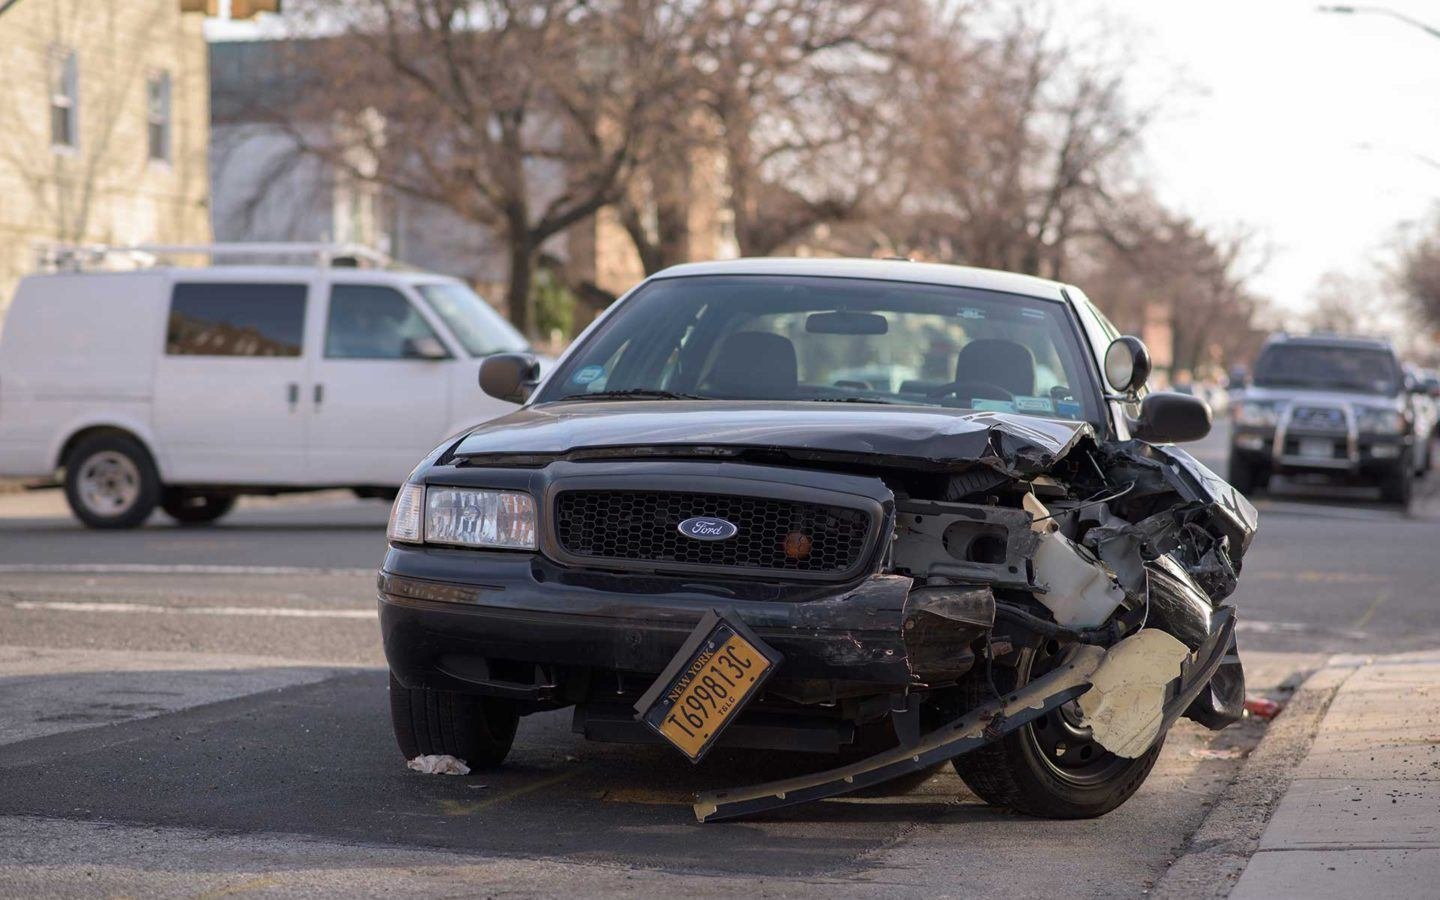 black ford car after a car accident with damaged front right bumper